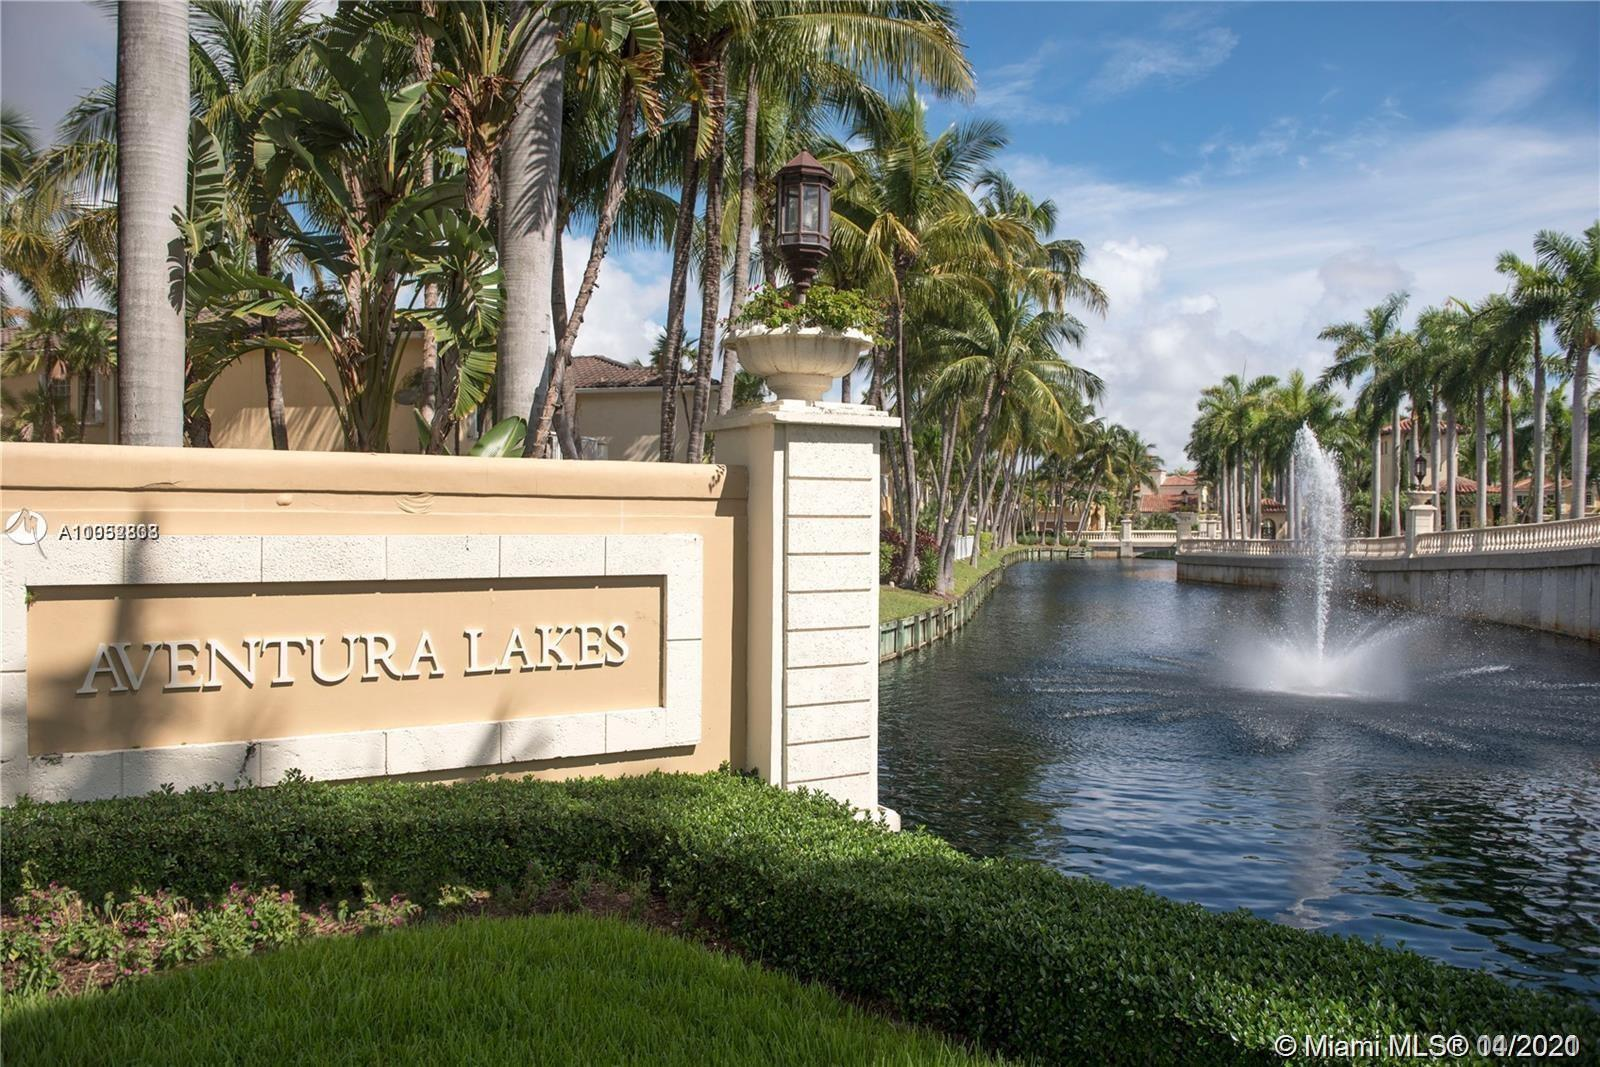 Aventura Lakes awaiting access from tenant in order to complete remarks...  owners liquidating her r